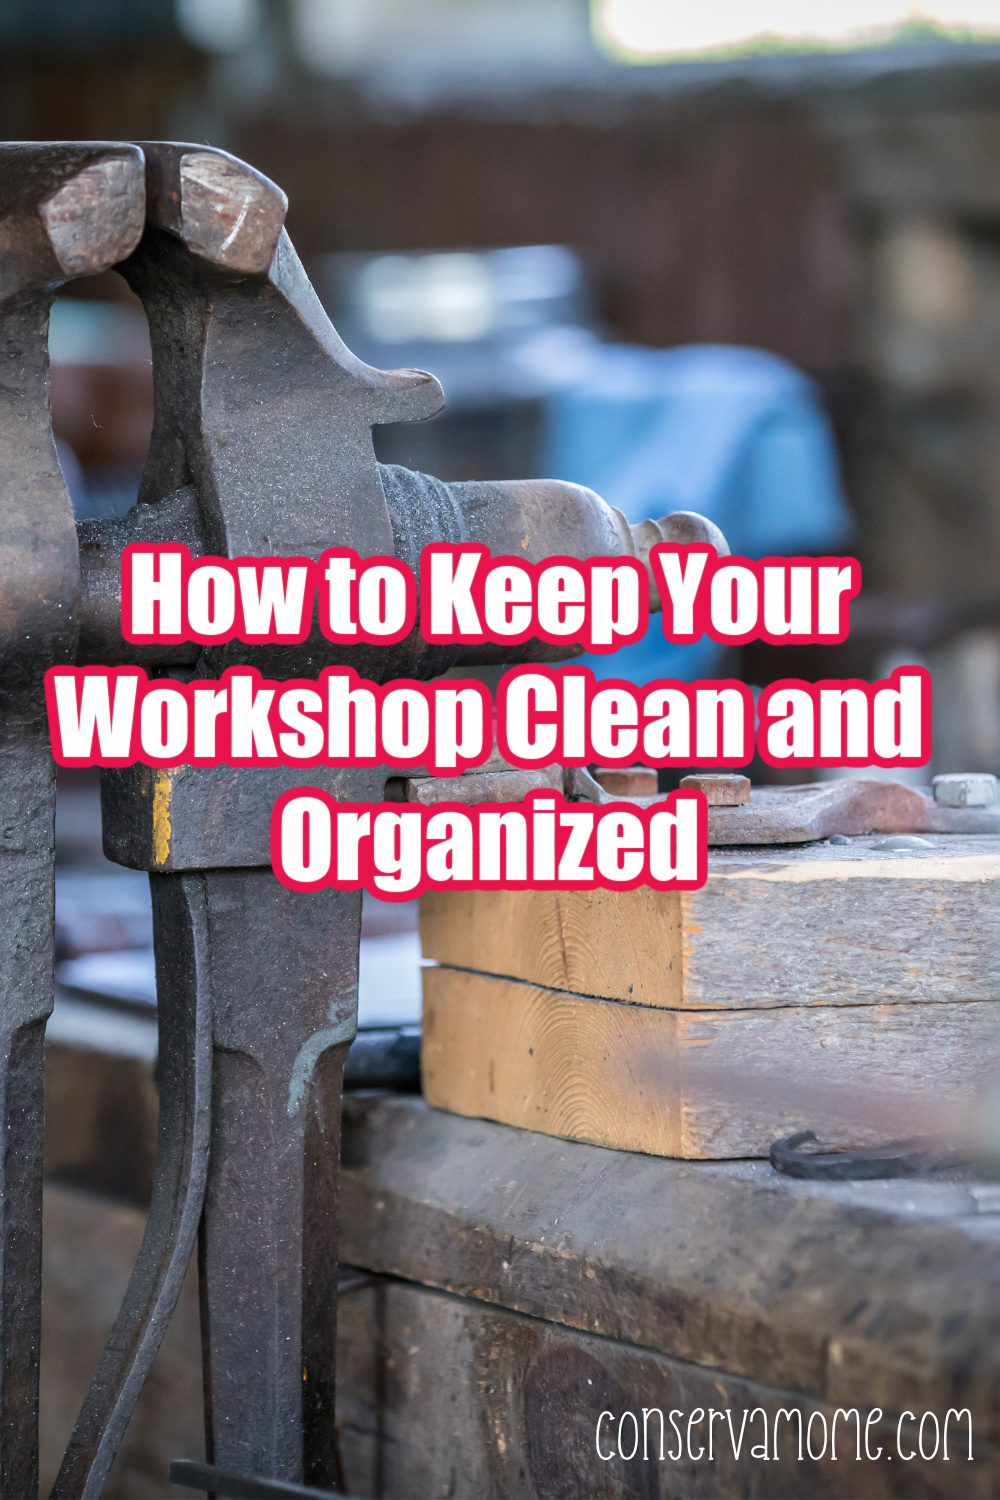 How to keep your workshop clean and organized